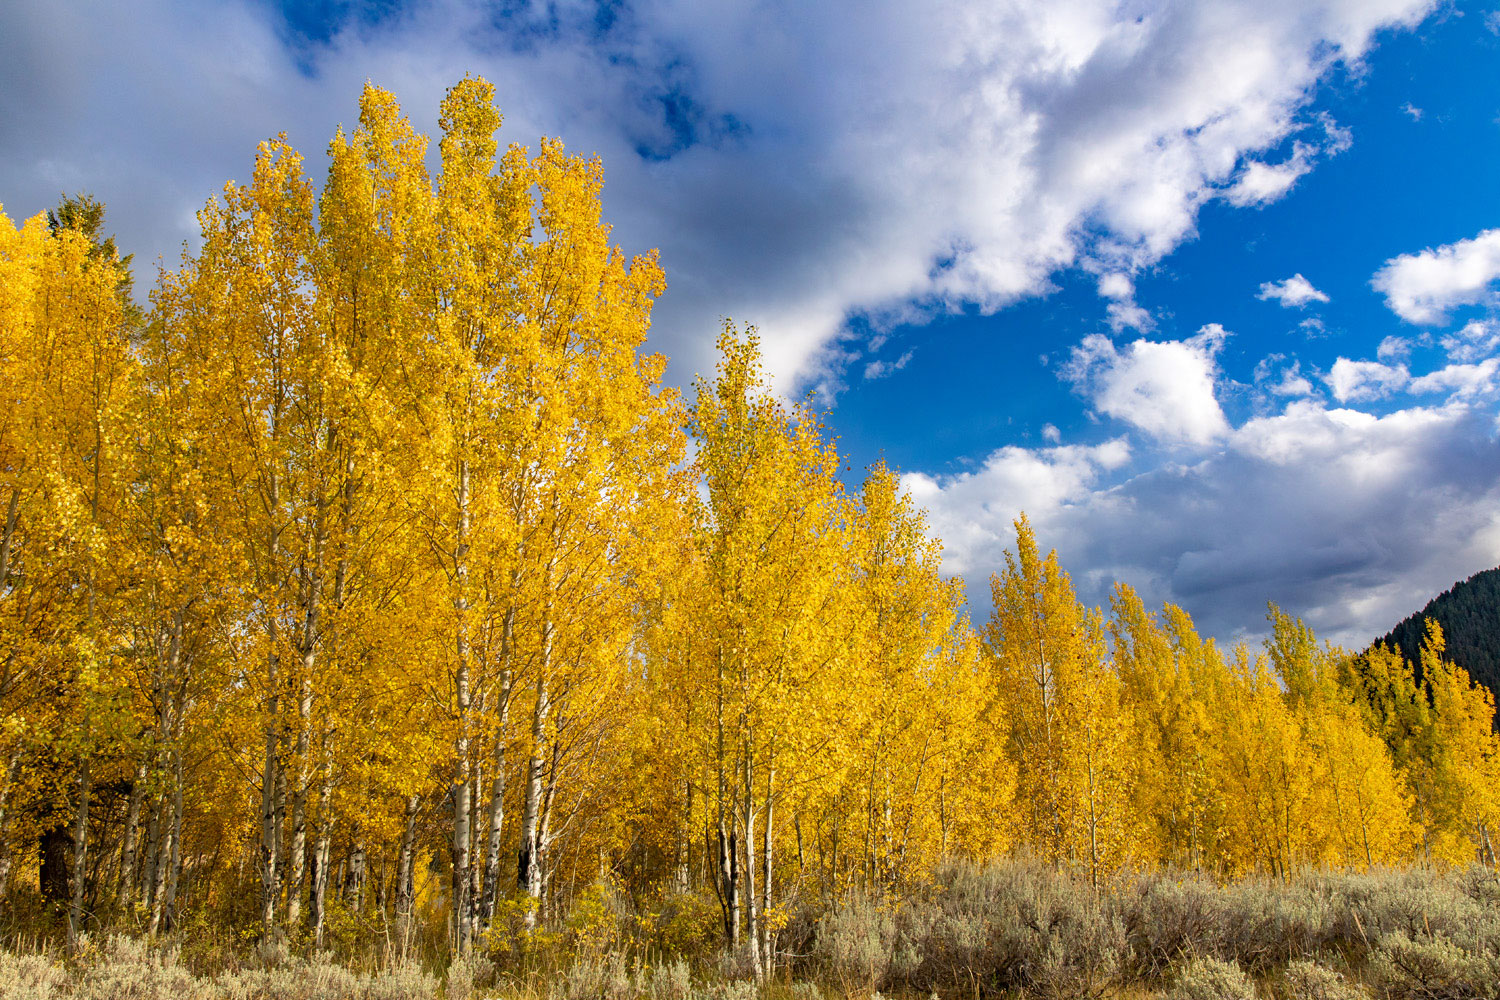 The musty smell of autumn leaves complements the spectacular contrast of glowing aspen and bluebird skies.